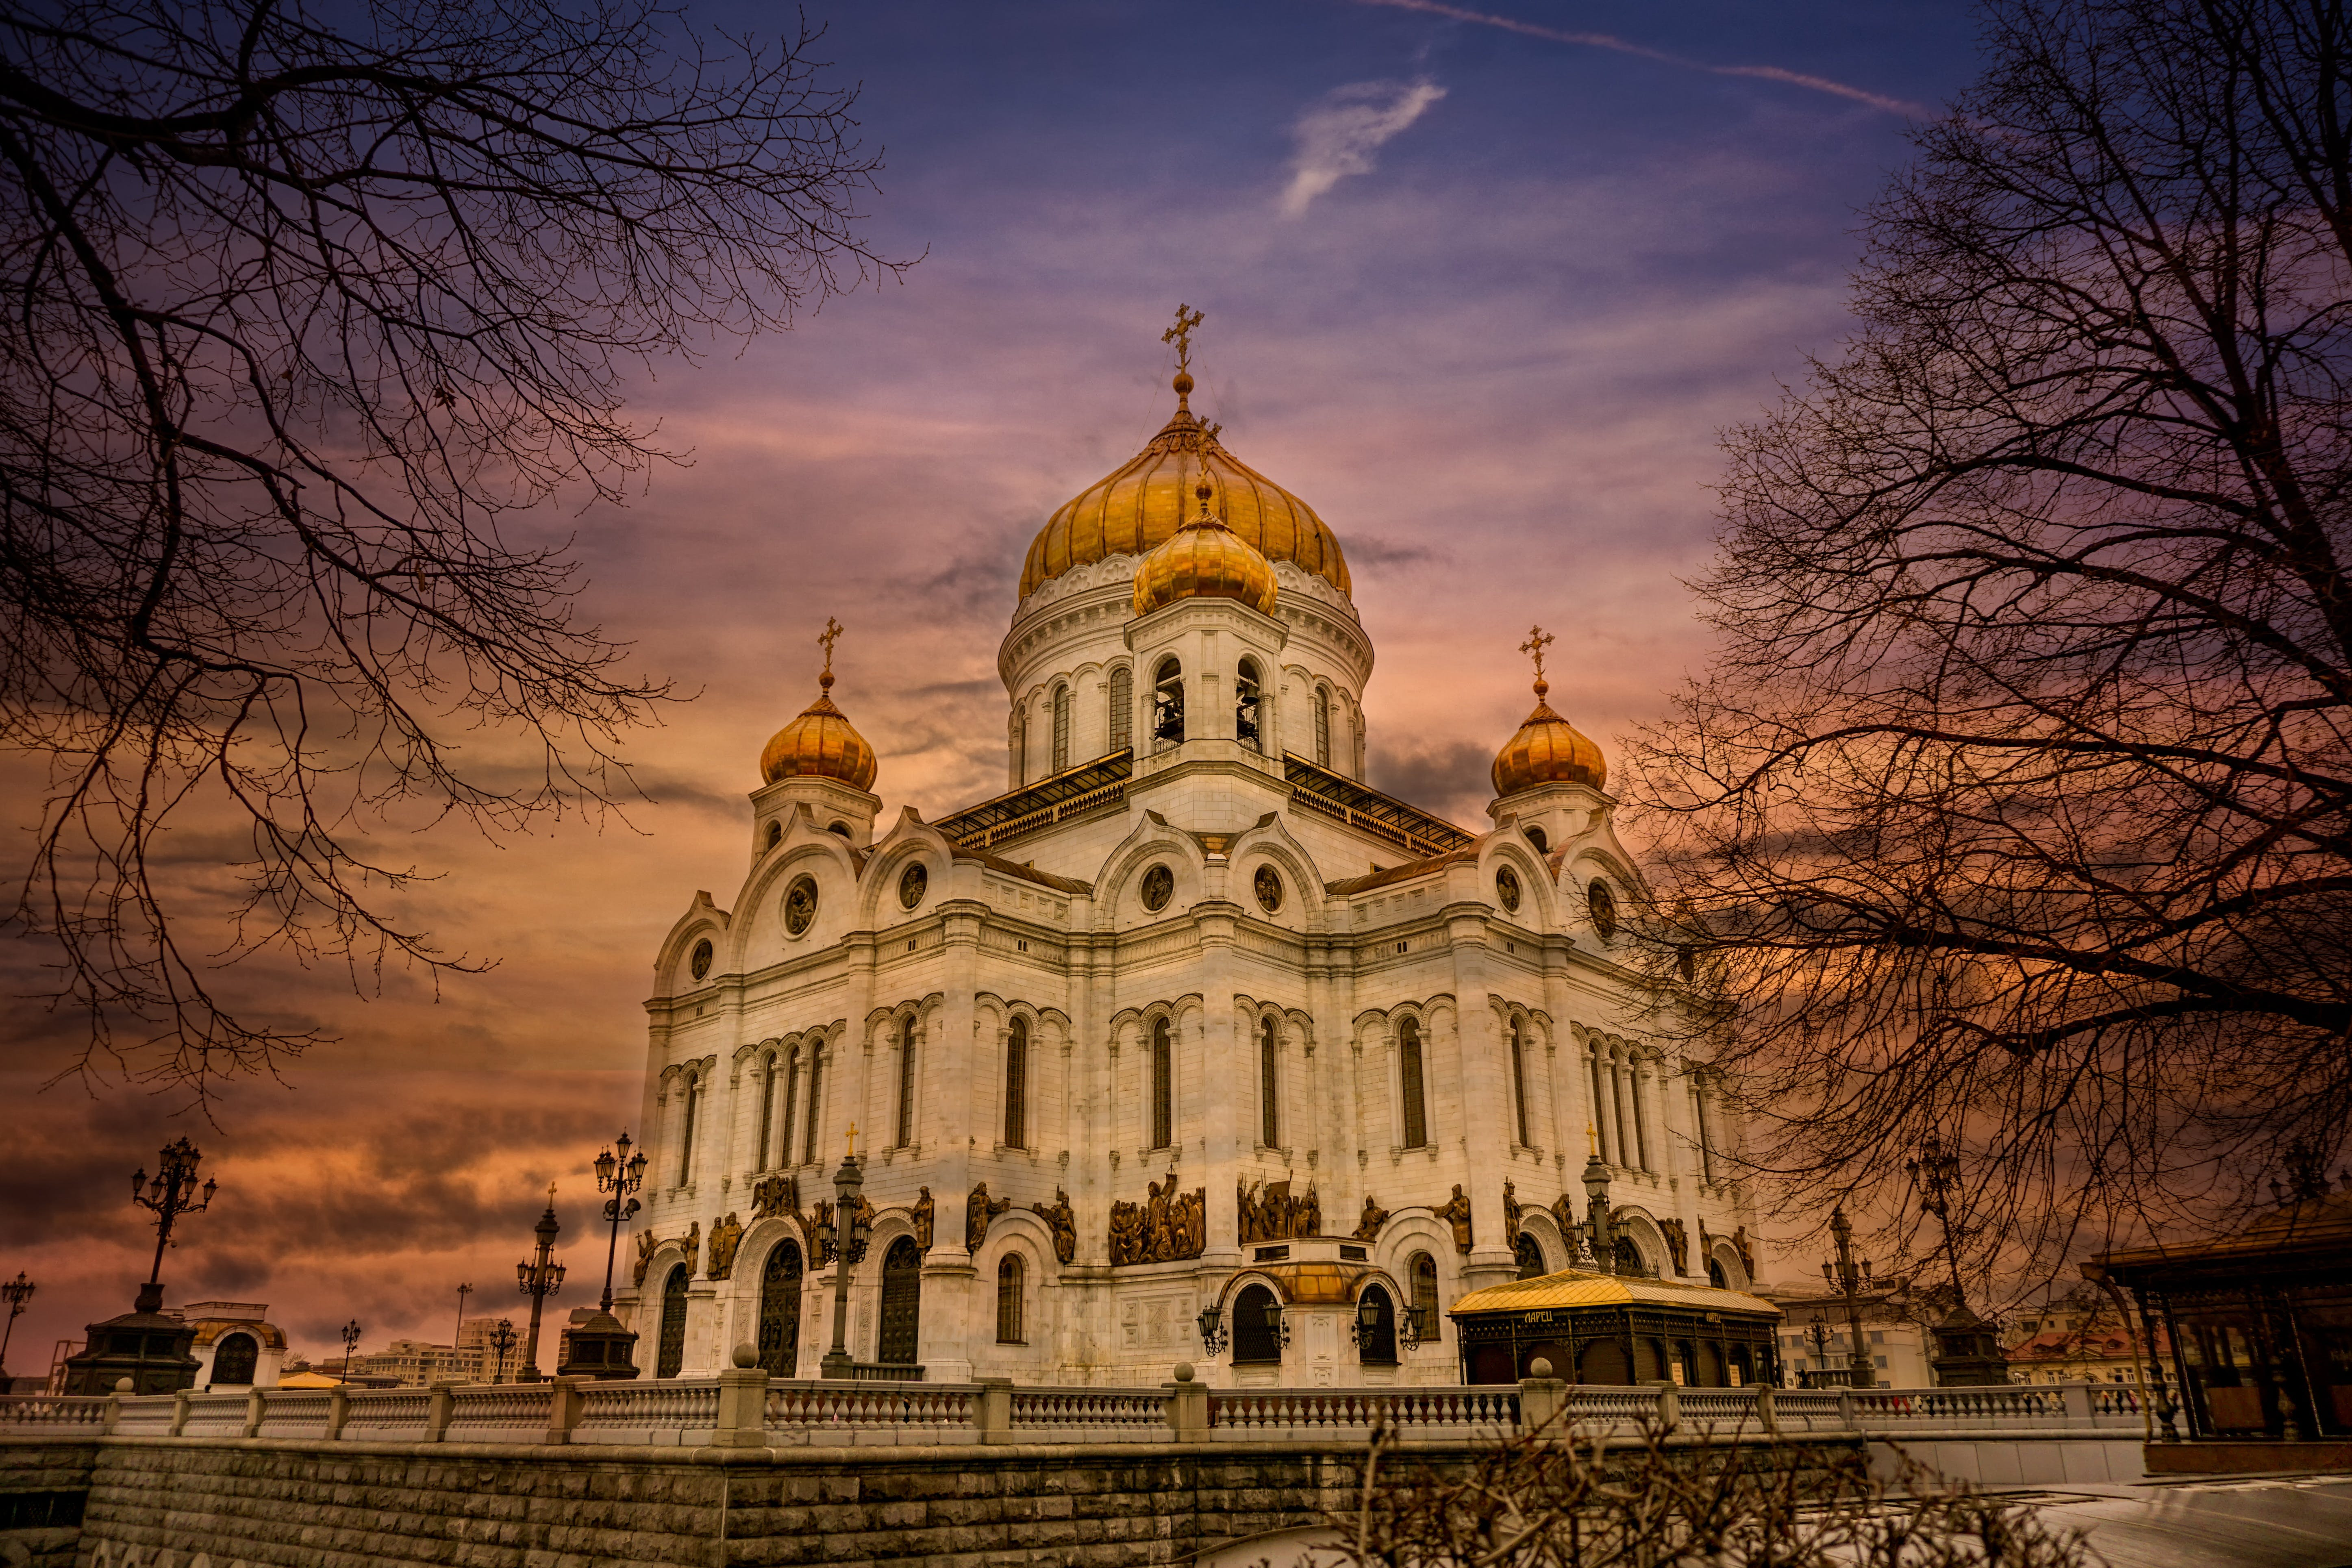 White and Gold Dome Building